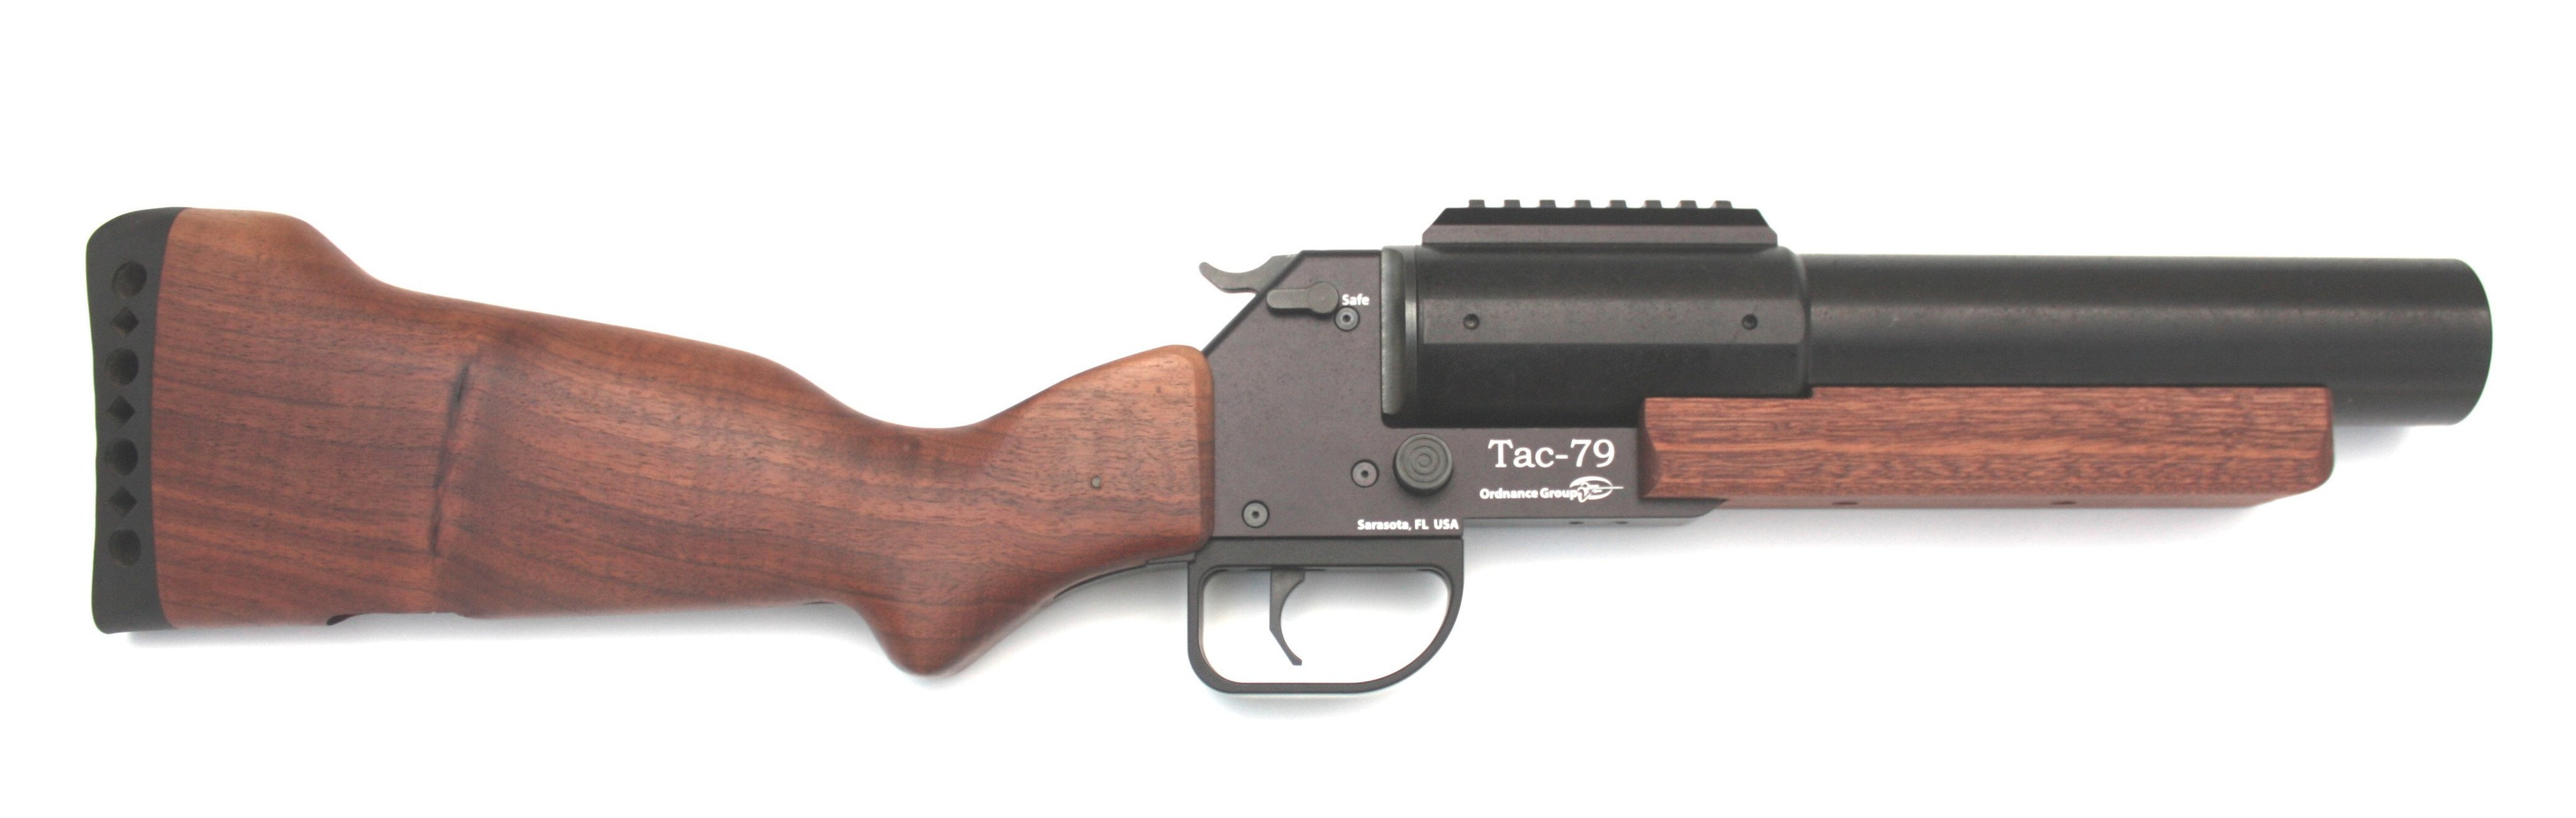 Tac-M79 37mm Wood Stocked Top Break Launcher